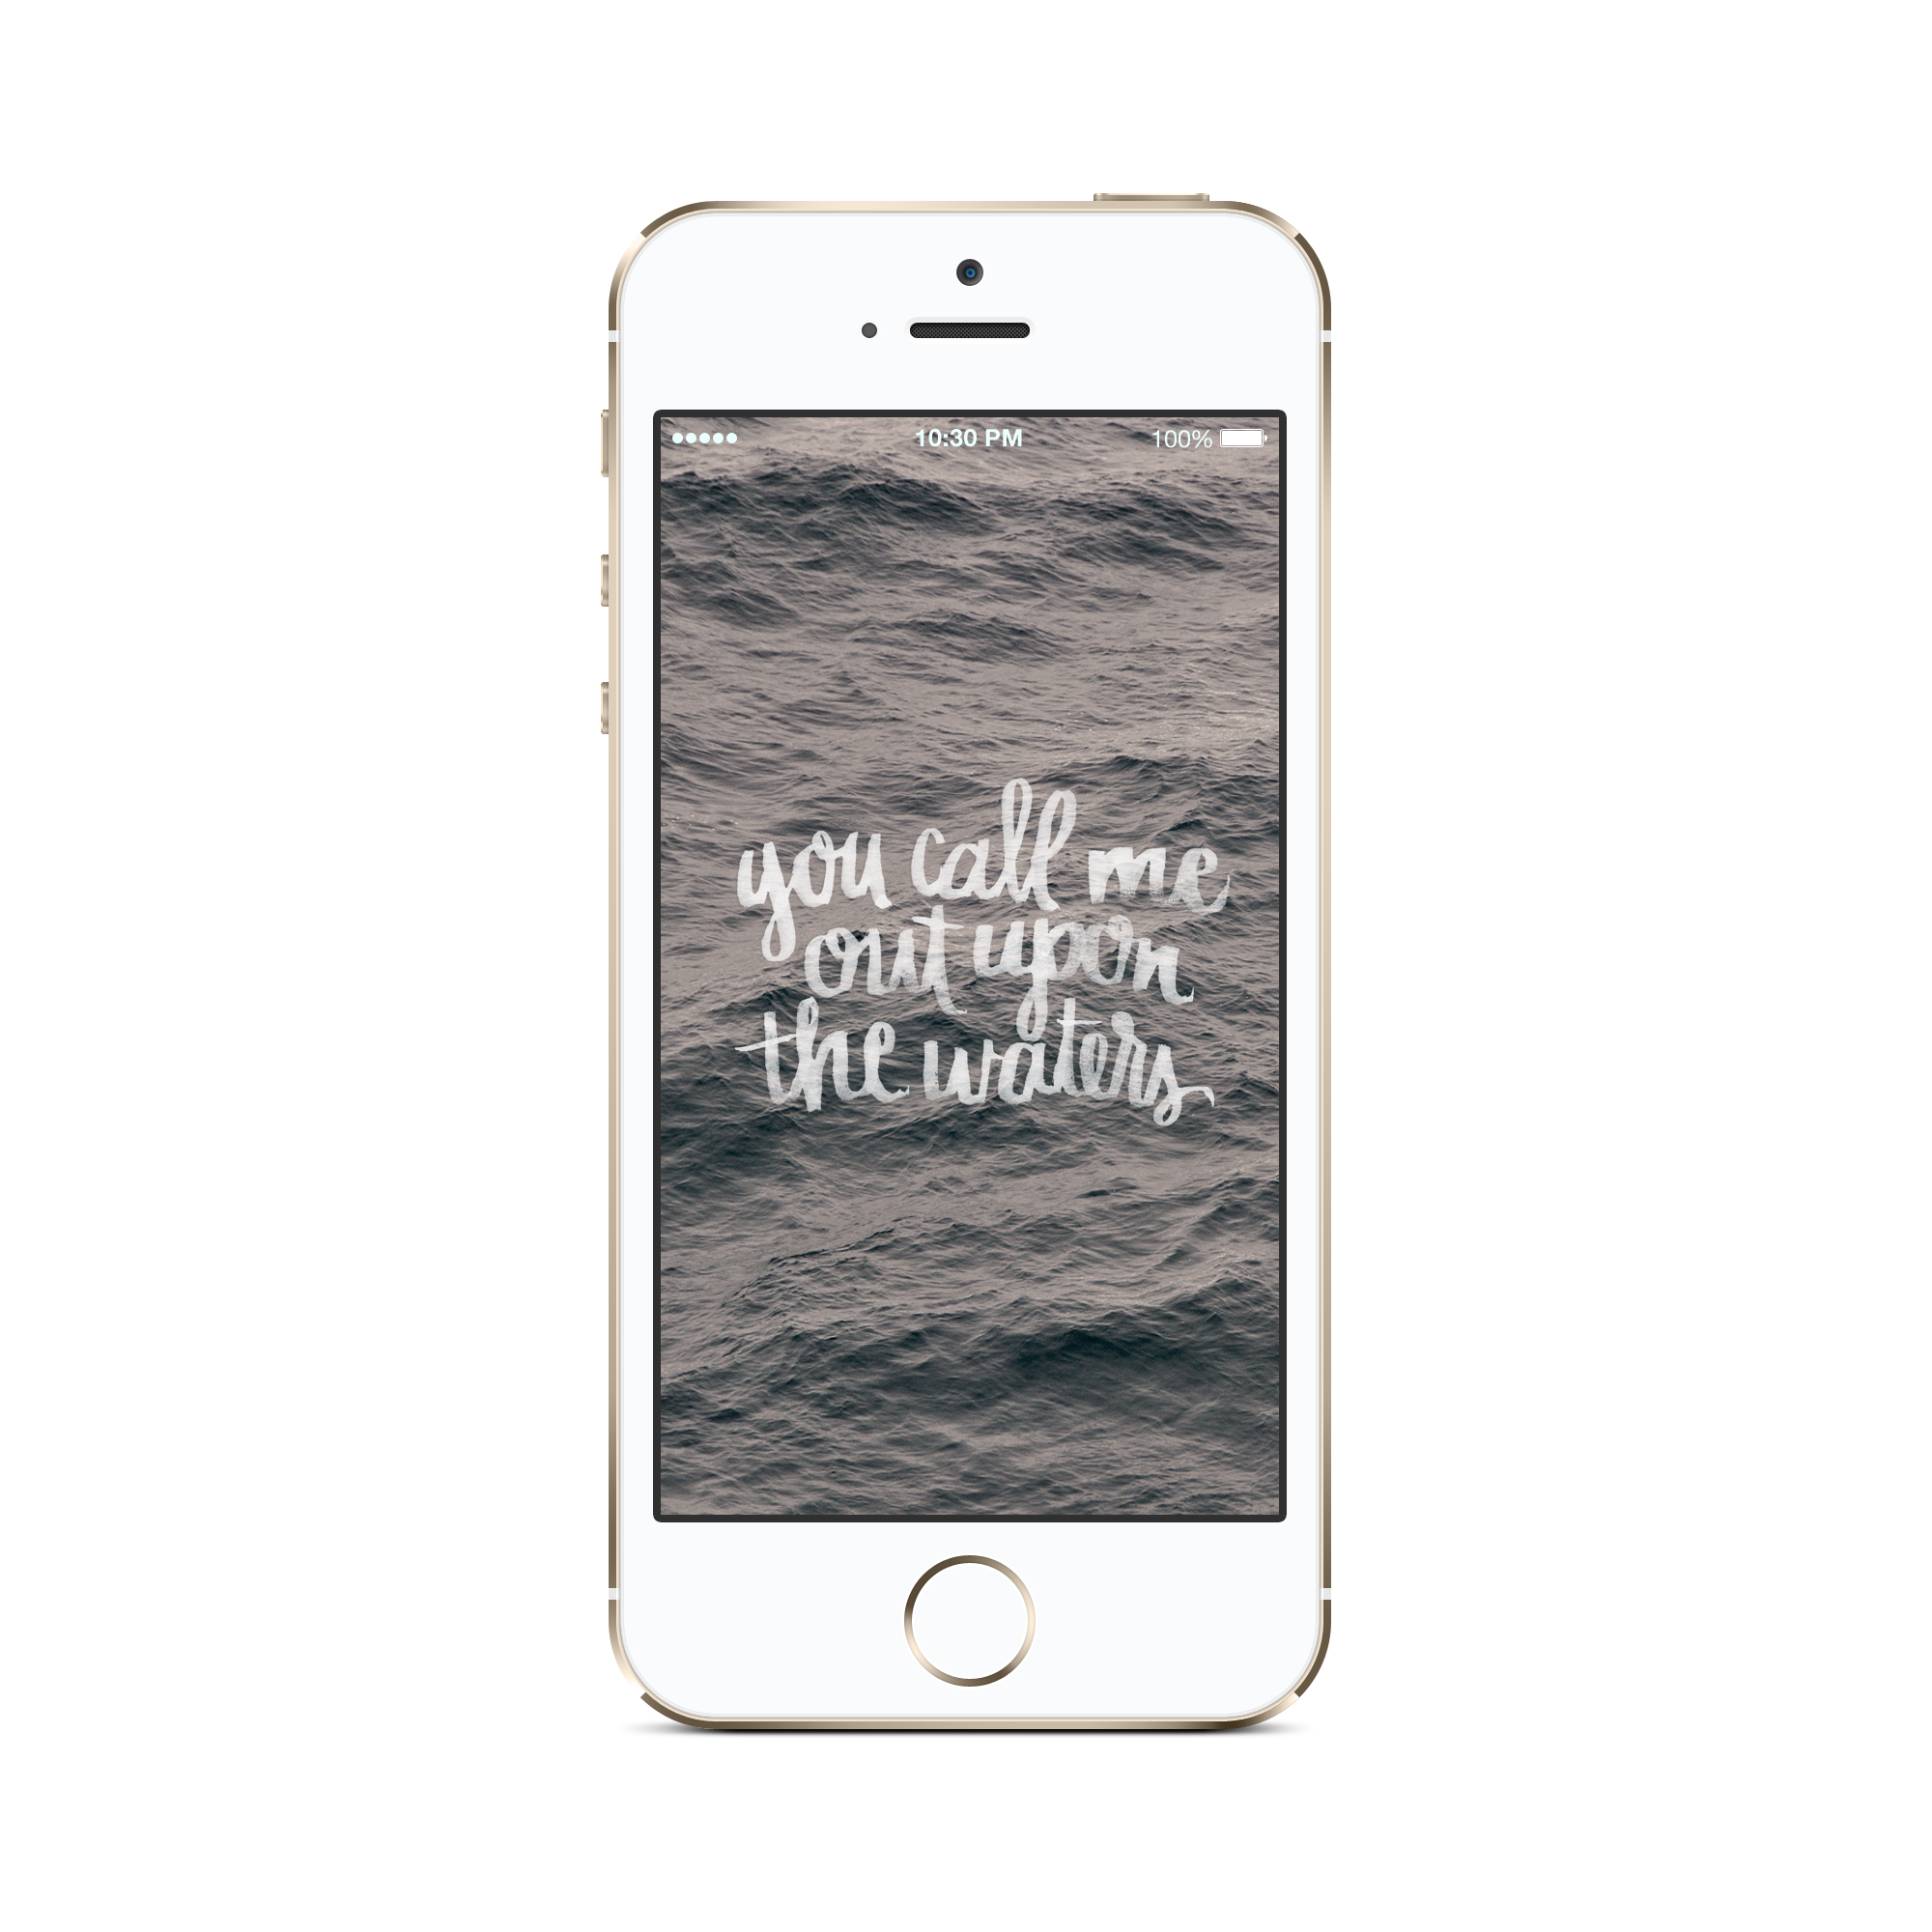 oceans wallpaper phone mockup